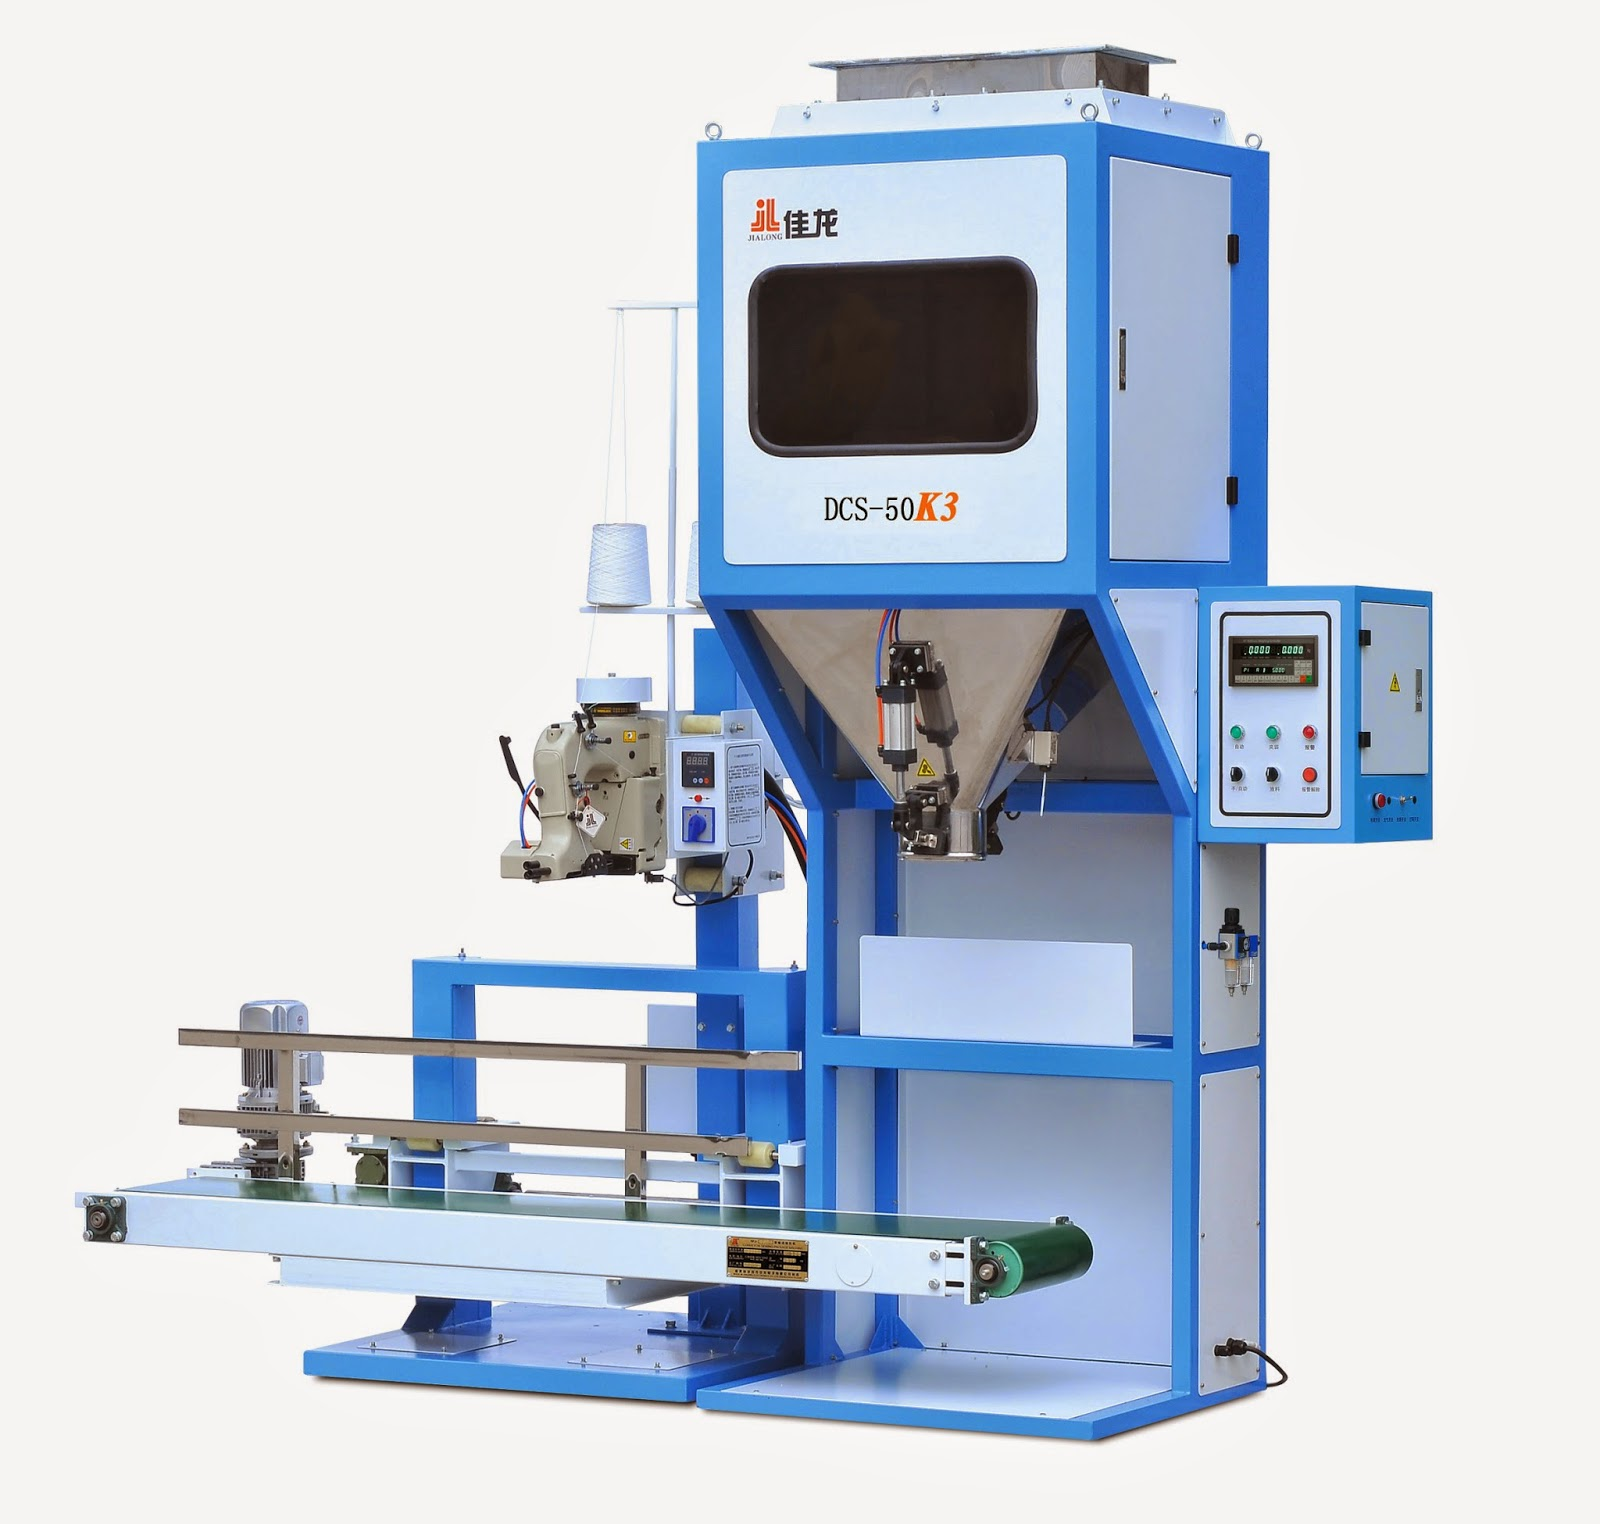 Flour / powder Packaging Machinery